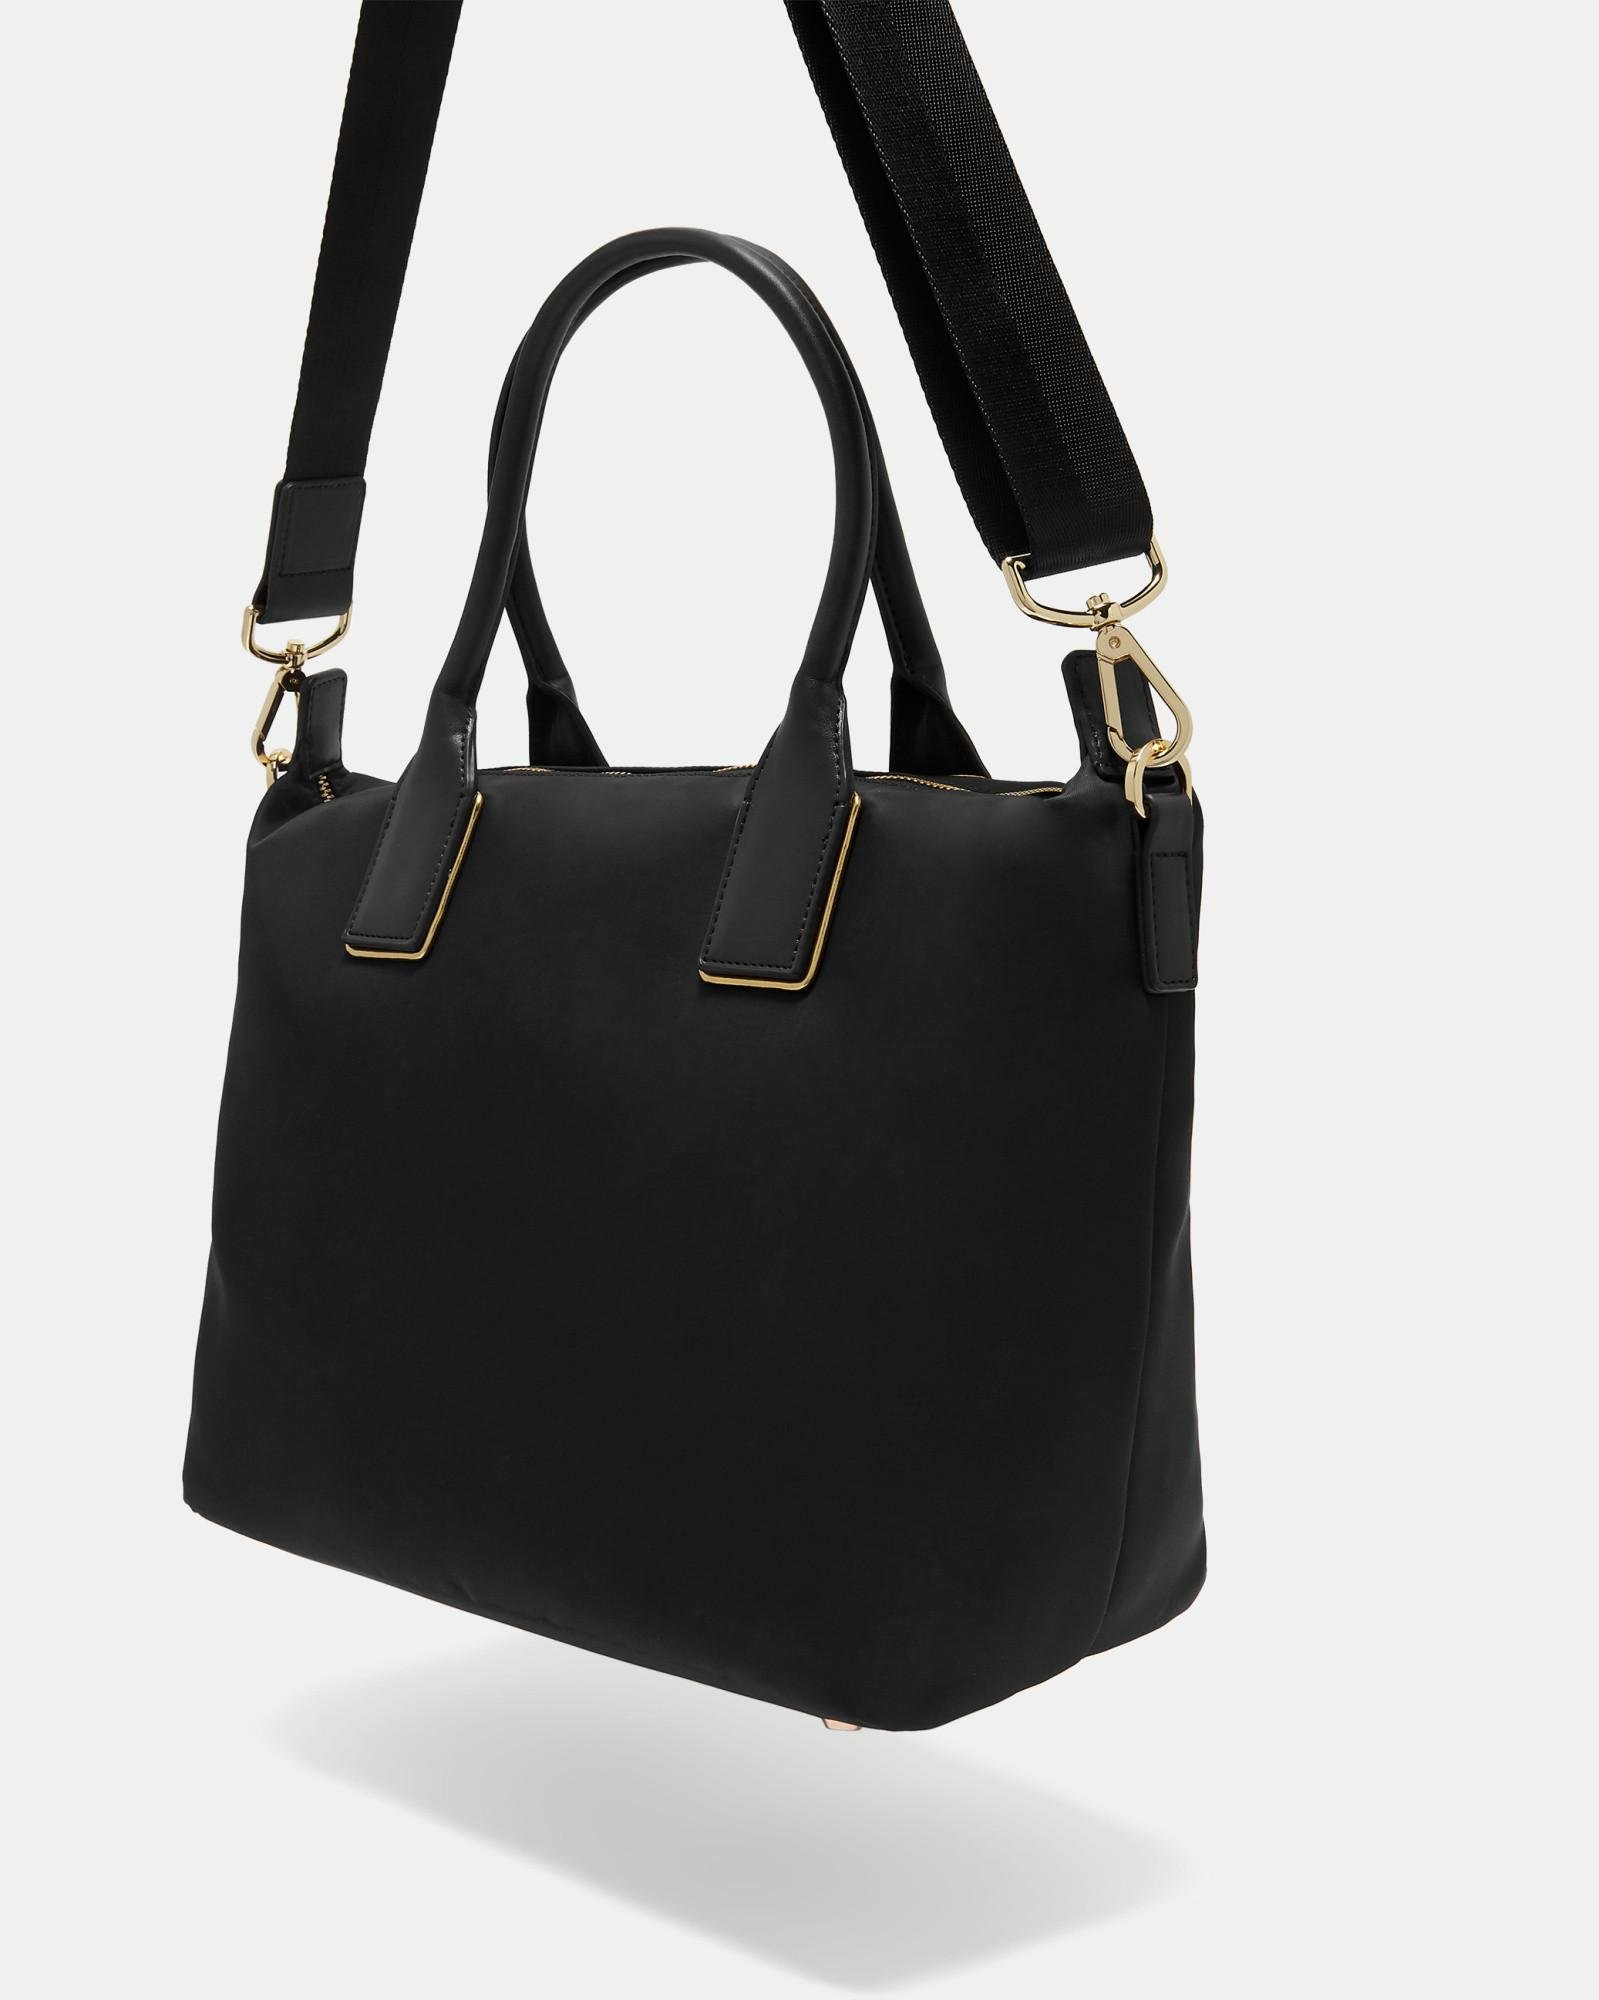 0d2e65536ab6fc Ted Baker Small Tote Bag in Black - Save 10% - Lyst